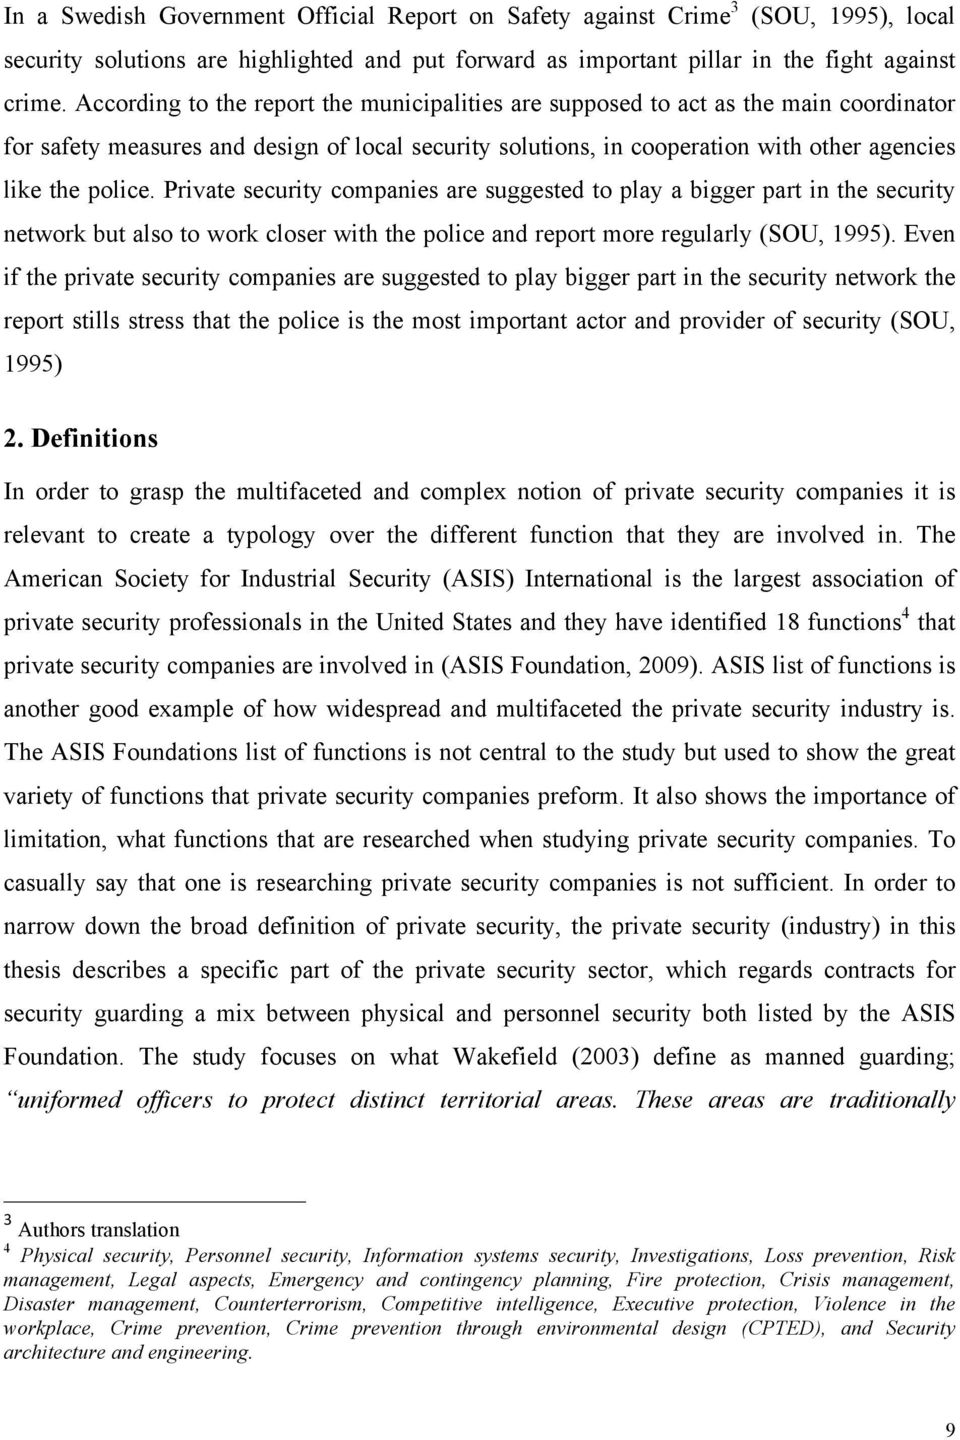 Private security companies are suggested to play a bigger part in the security network but also to work closer with the police and report more regularly (SOU, 1995).